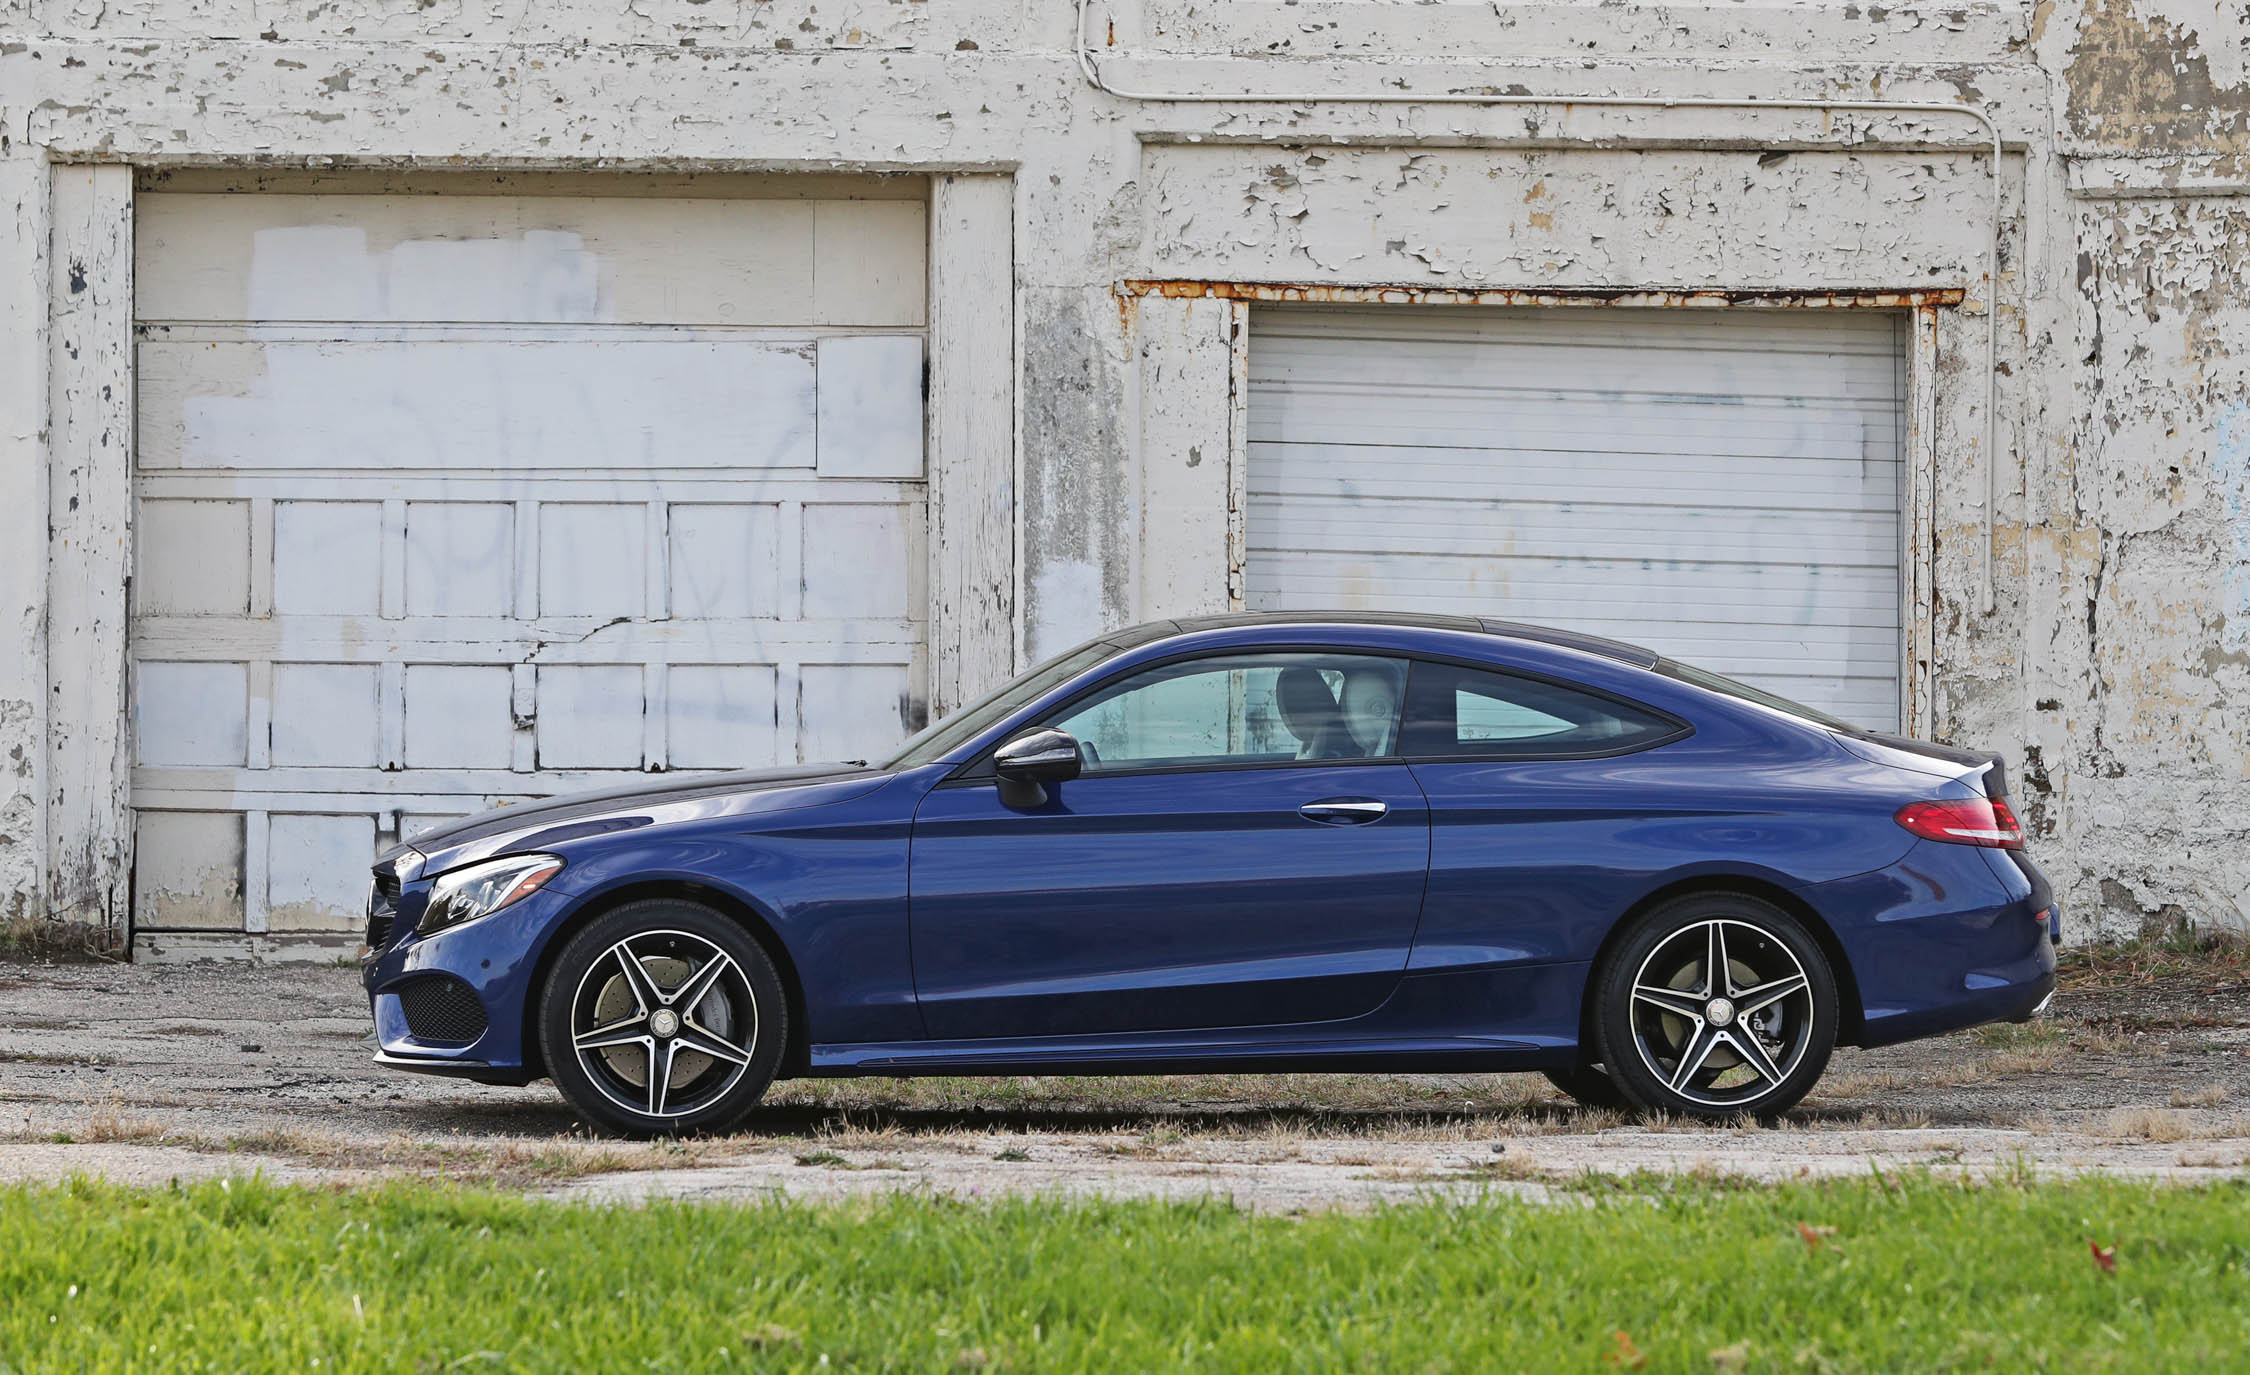 2017 Mercedes Benz C300 4MATIC Coupe Exterior Side (View 29 of 44)